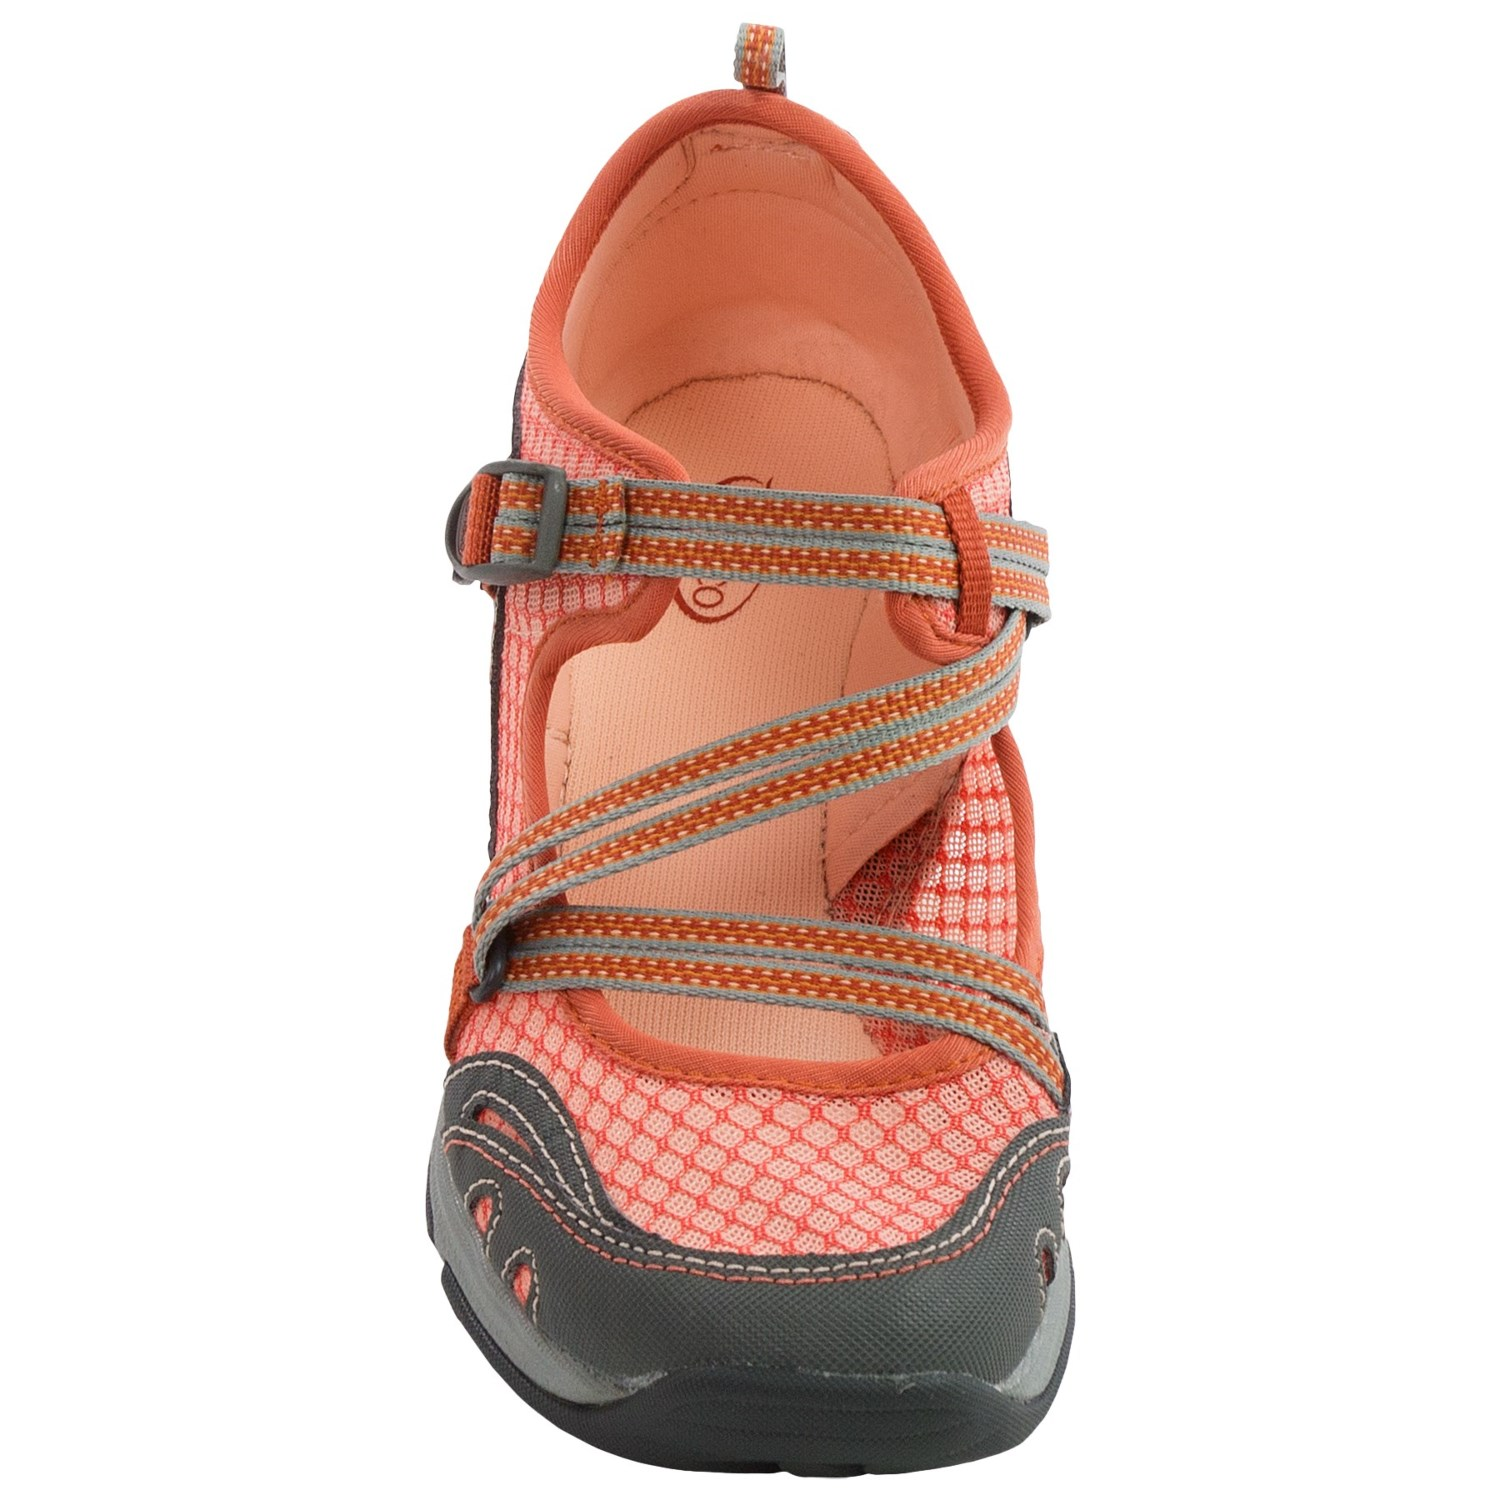 002562d93 Chaco OutCross Evo Mary Jane Water Shoes (For Women) - Save 40%